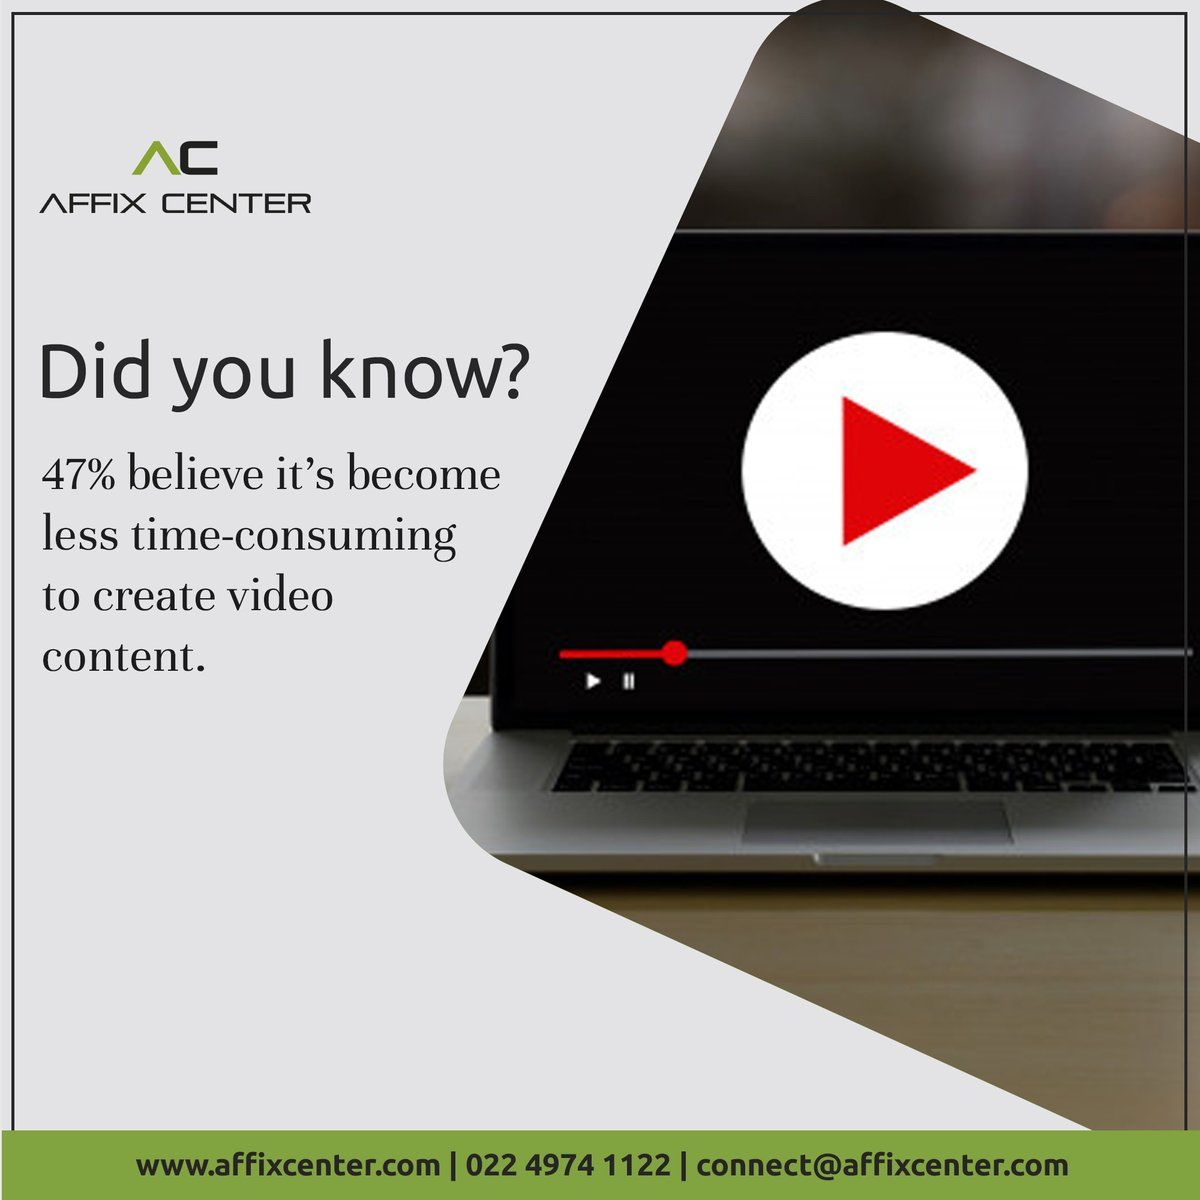 Did you Know?  47% believe it's become less time-consuming to create video content.  #videocontent #videomarketing #videoproduction #digitalmarketing #contentcreator #videocreator #contentmarketing #marketing #videocontentmarketing #videos #contentcreation #videographypic.twitter.com/2BvyID5HZ4